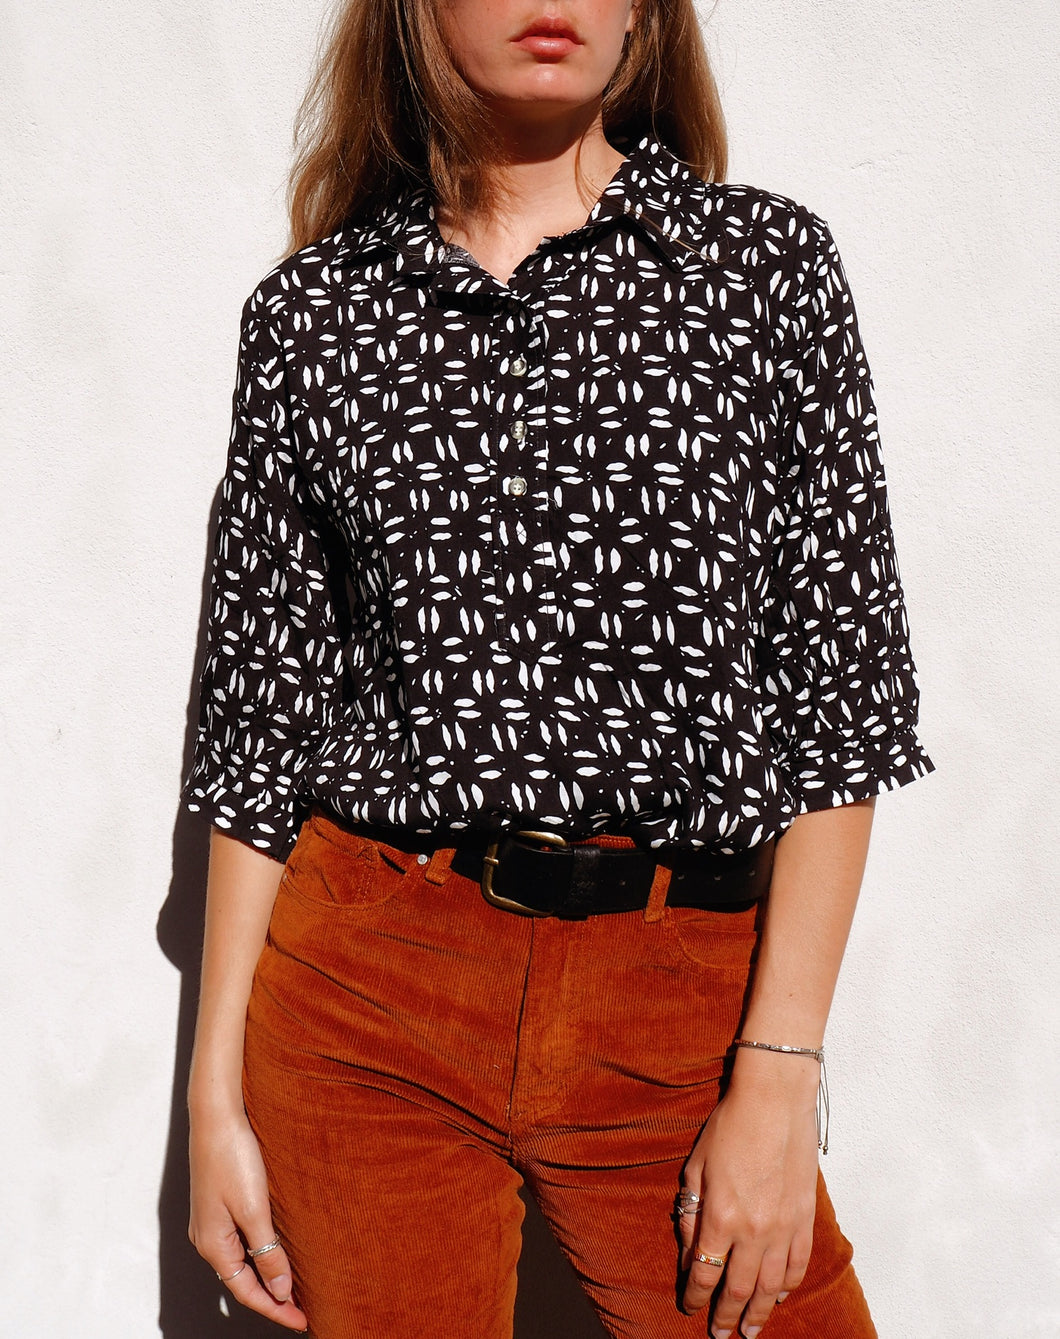 Short collared shirt